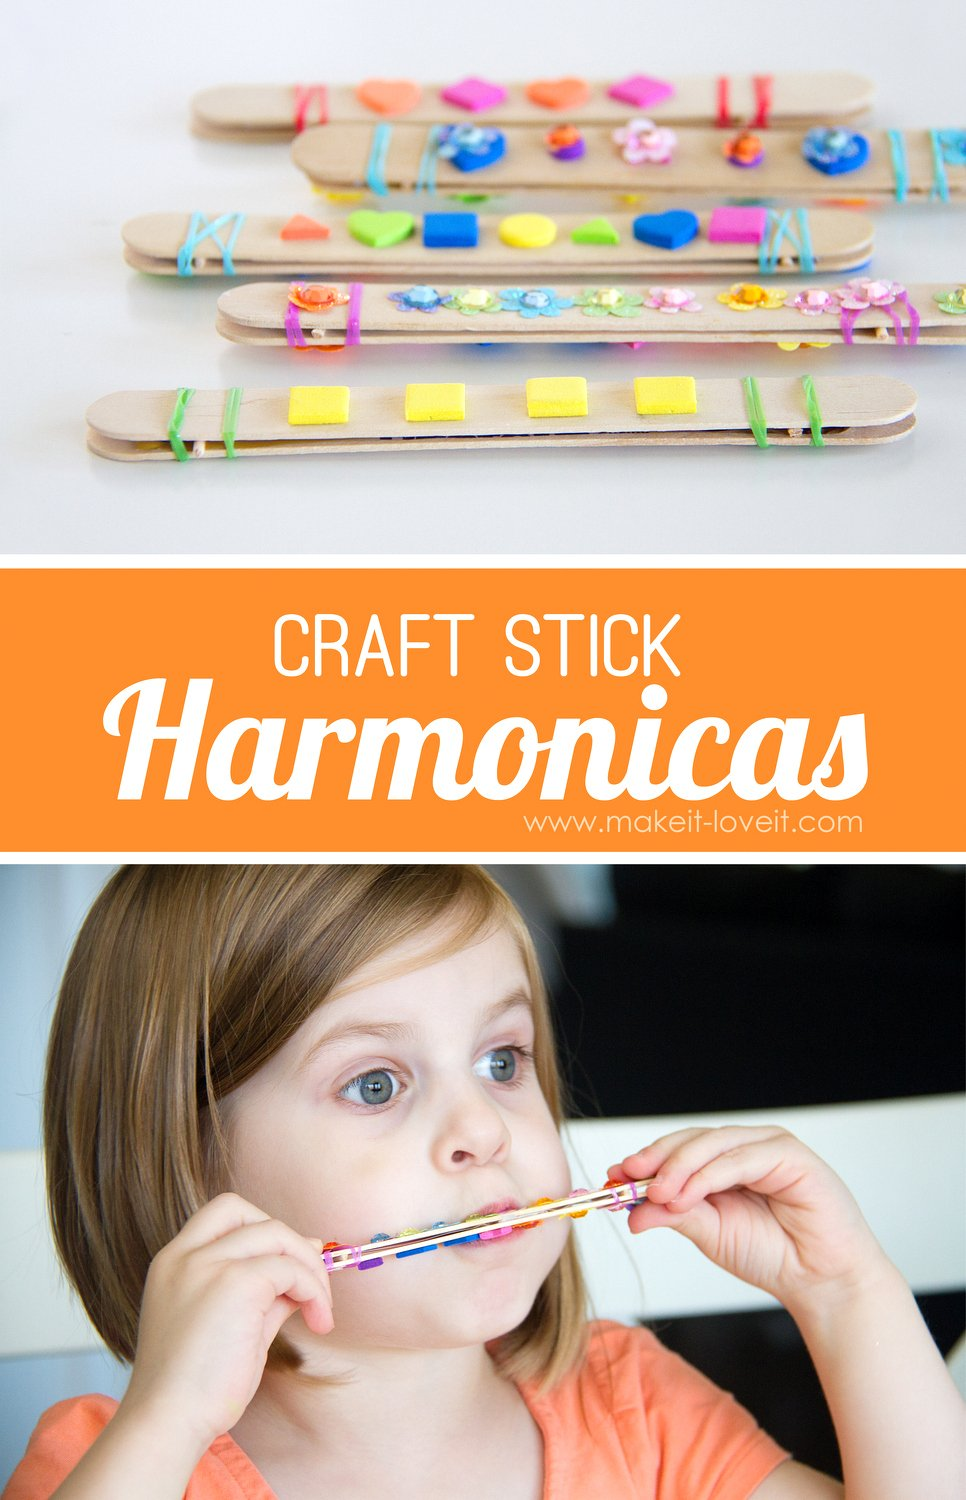 Diy craft stick harmonica kids activity skip to my lou for Quick crafts for kids